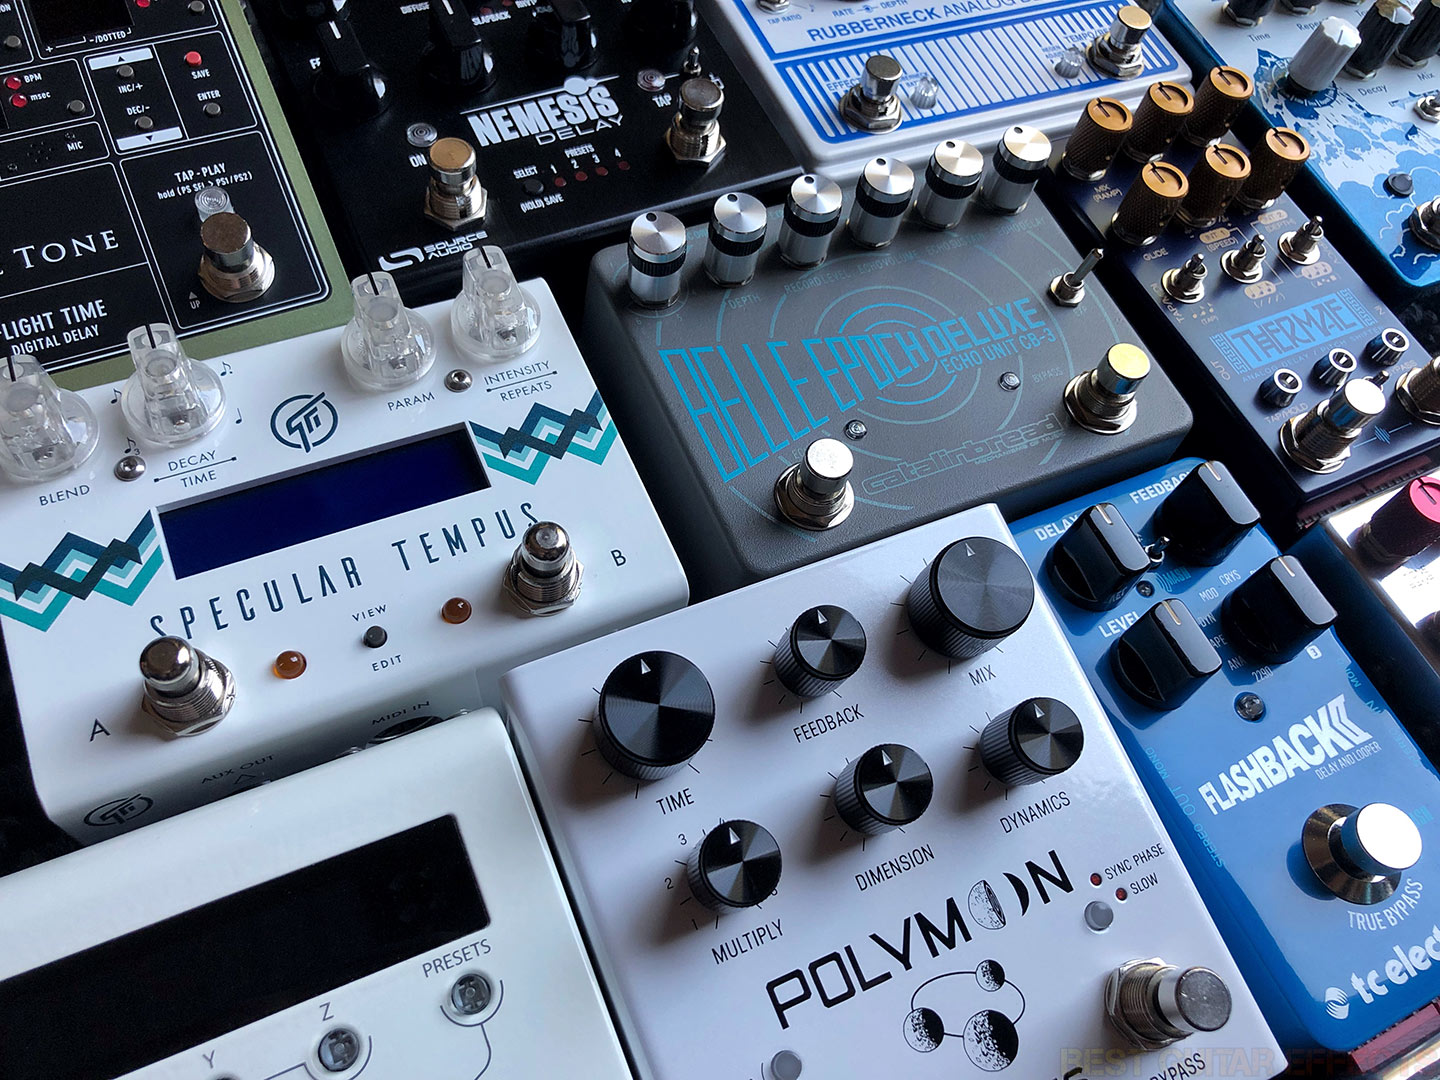 Top 20 Best Delay Pedals Of 2018 Set 8 Electronic Circuit Board Hard Drive Mounts Ebay Guitar Effects Is Back With A Round Up The Available In Market Filled Delays And We Wanted To Narrow Things Down